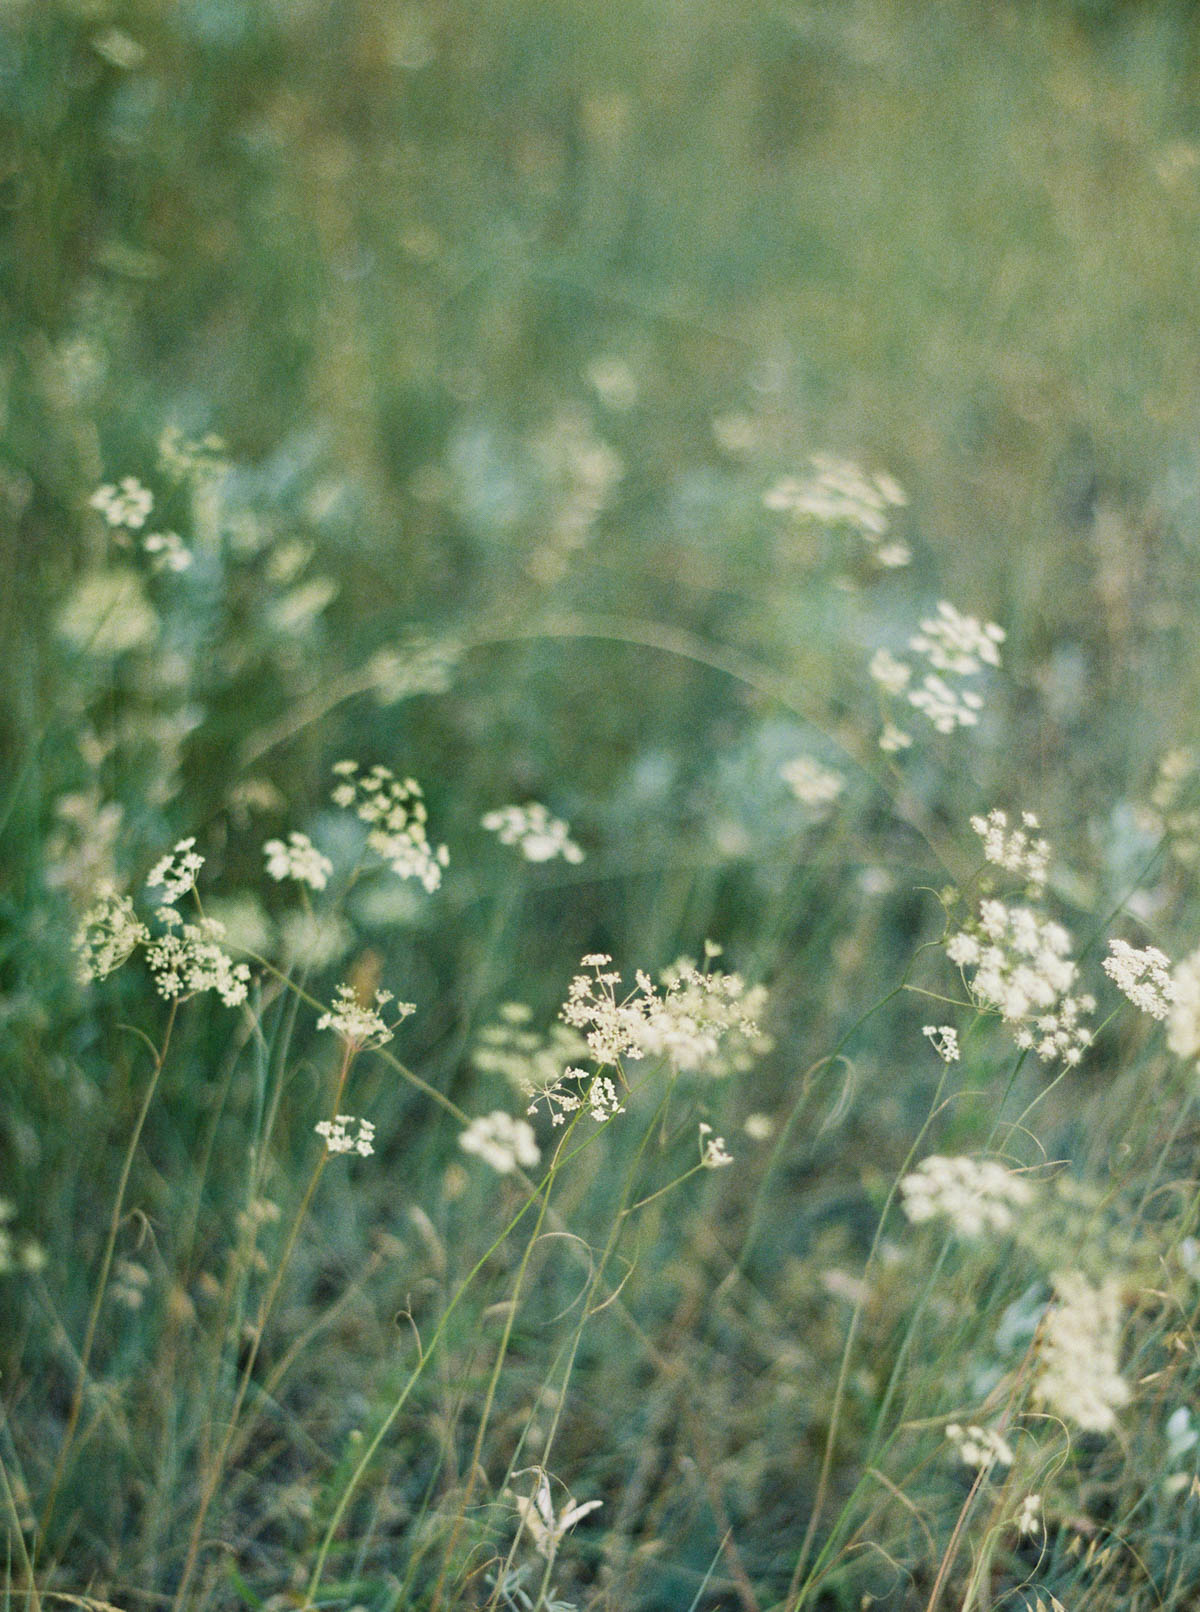 Queen Annes Lace captured on film by Destination Wedding Photographer Anna Peters